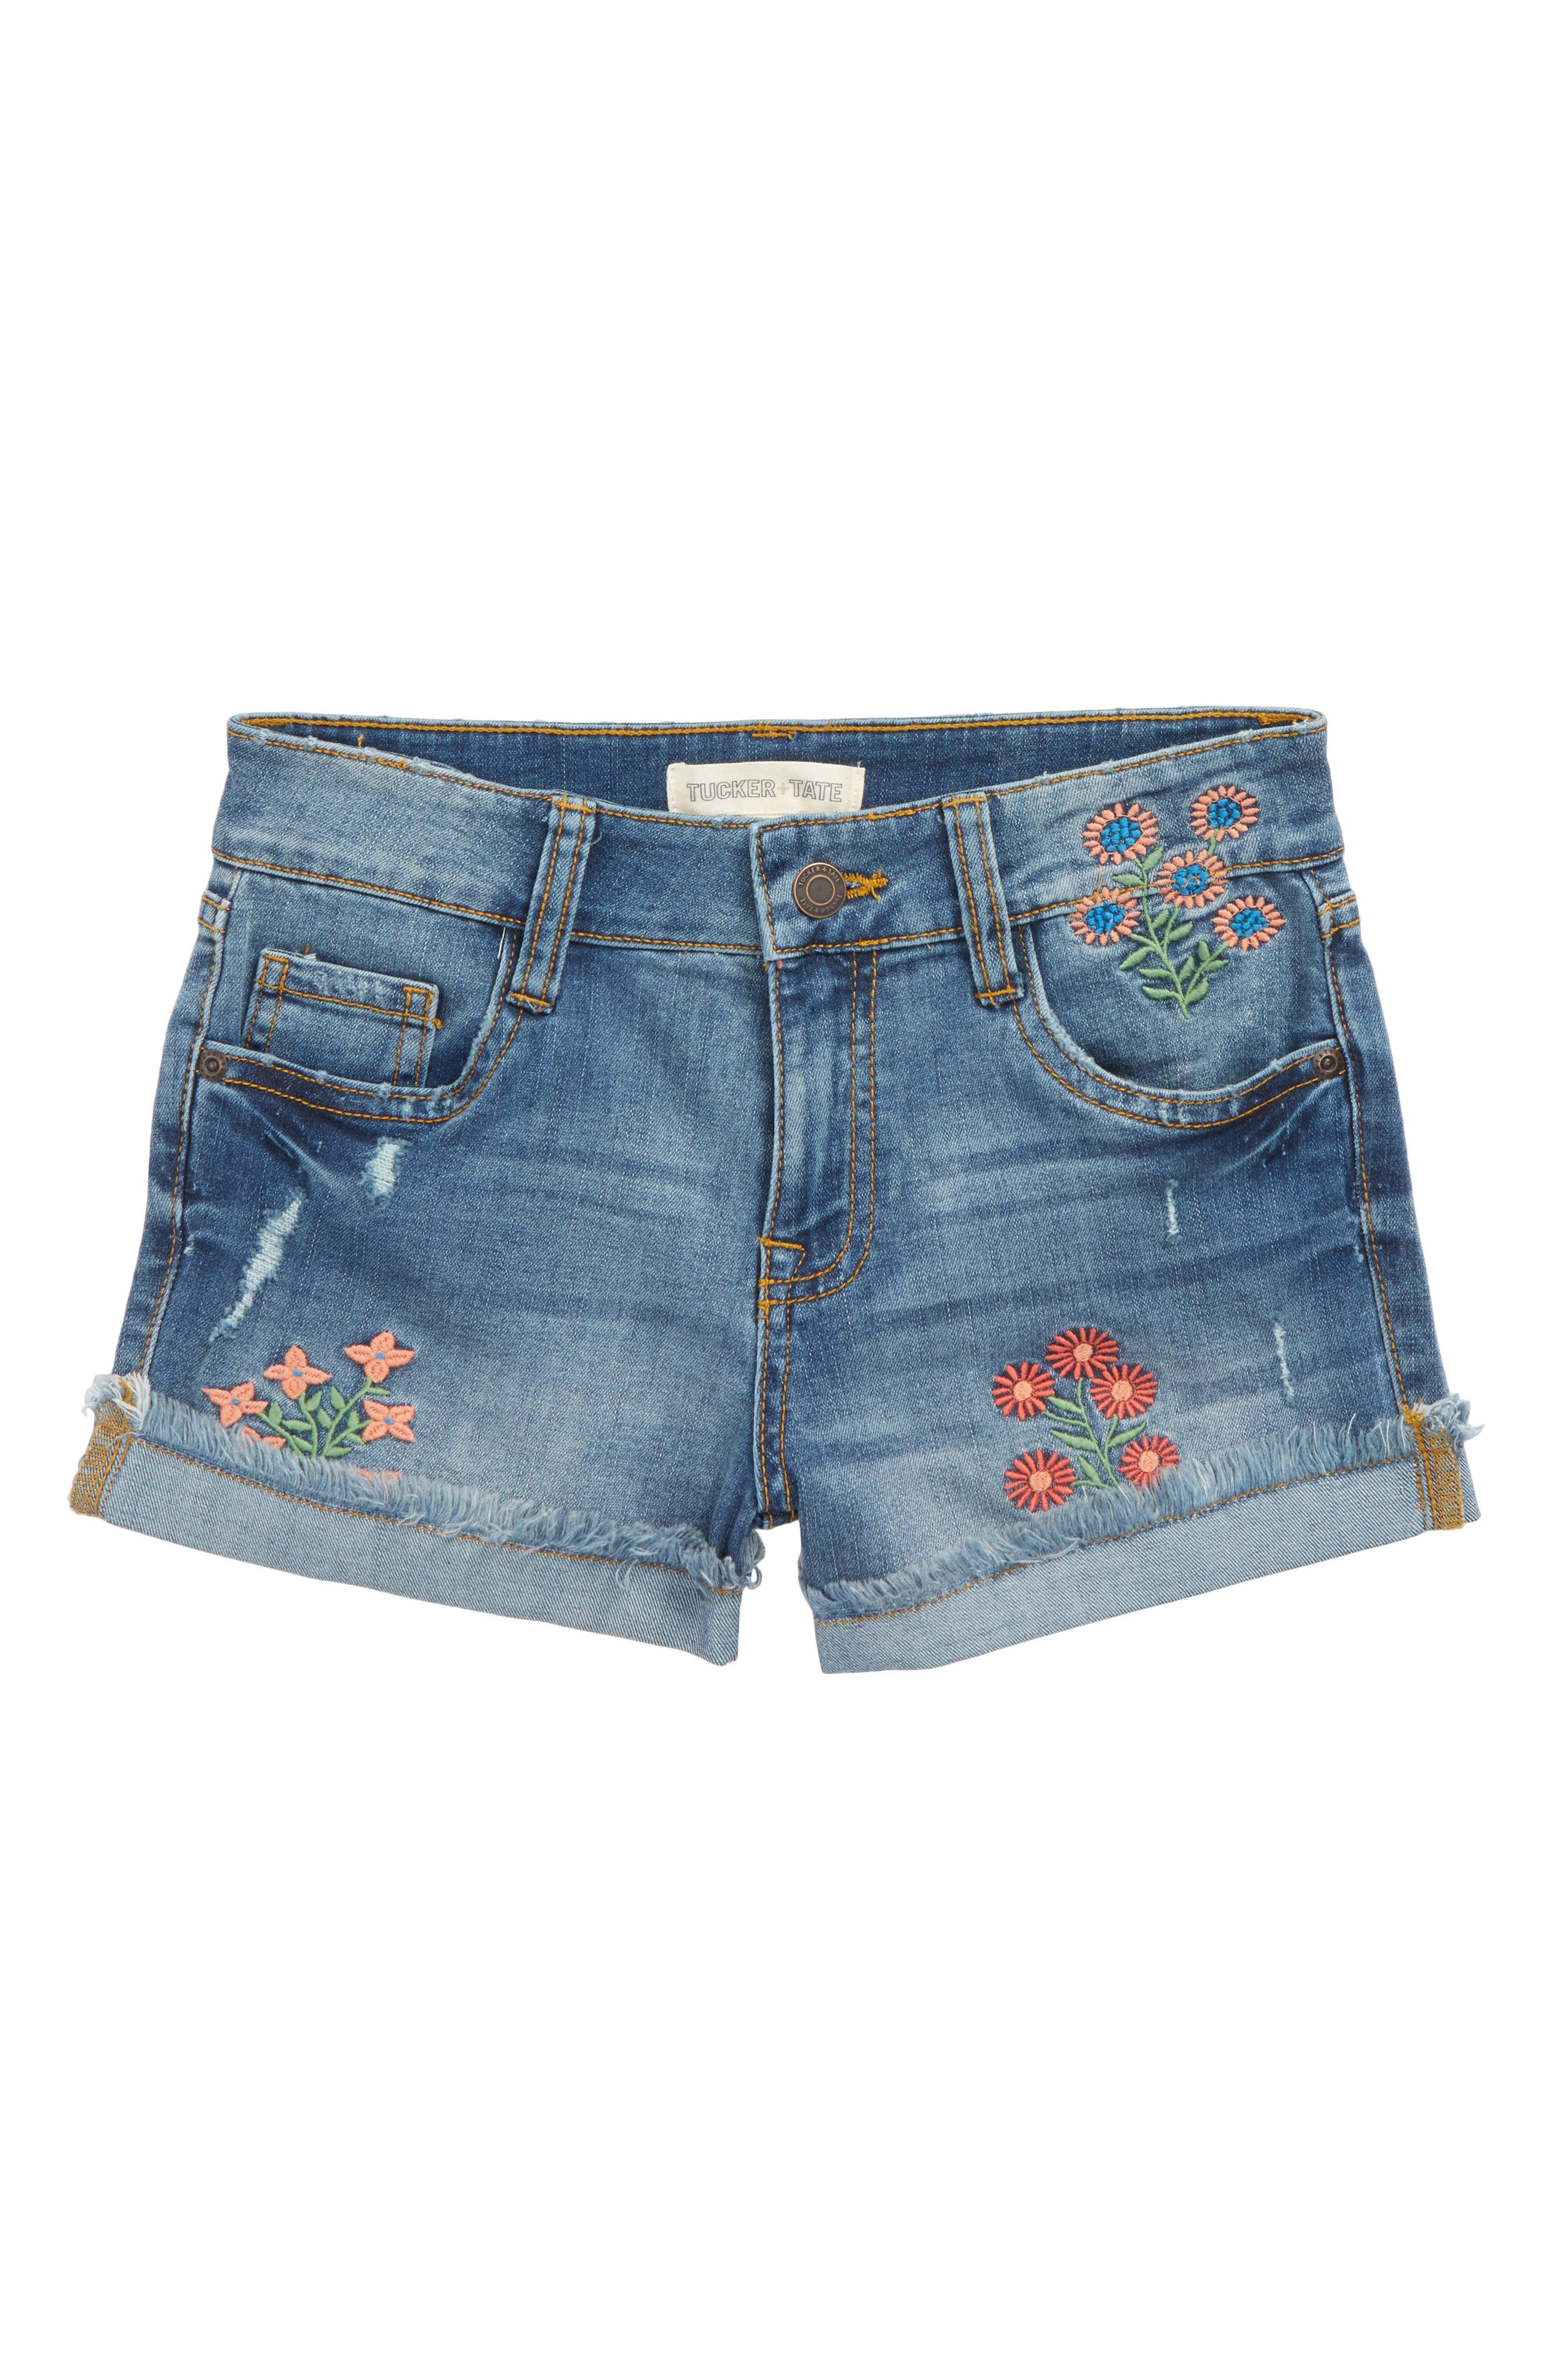 Flower Embroidered Denim Shorts,                         Main,                         color, Lake Wash